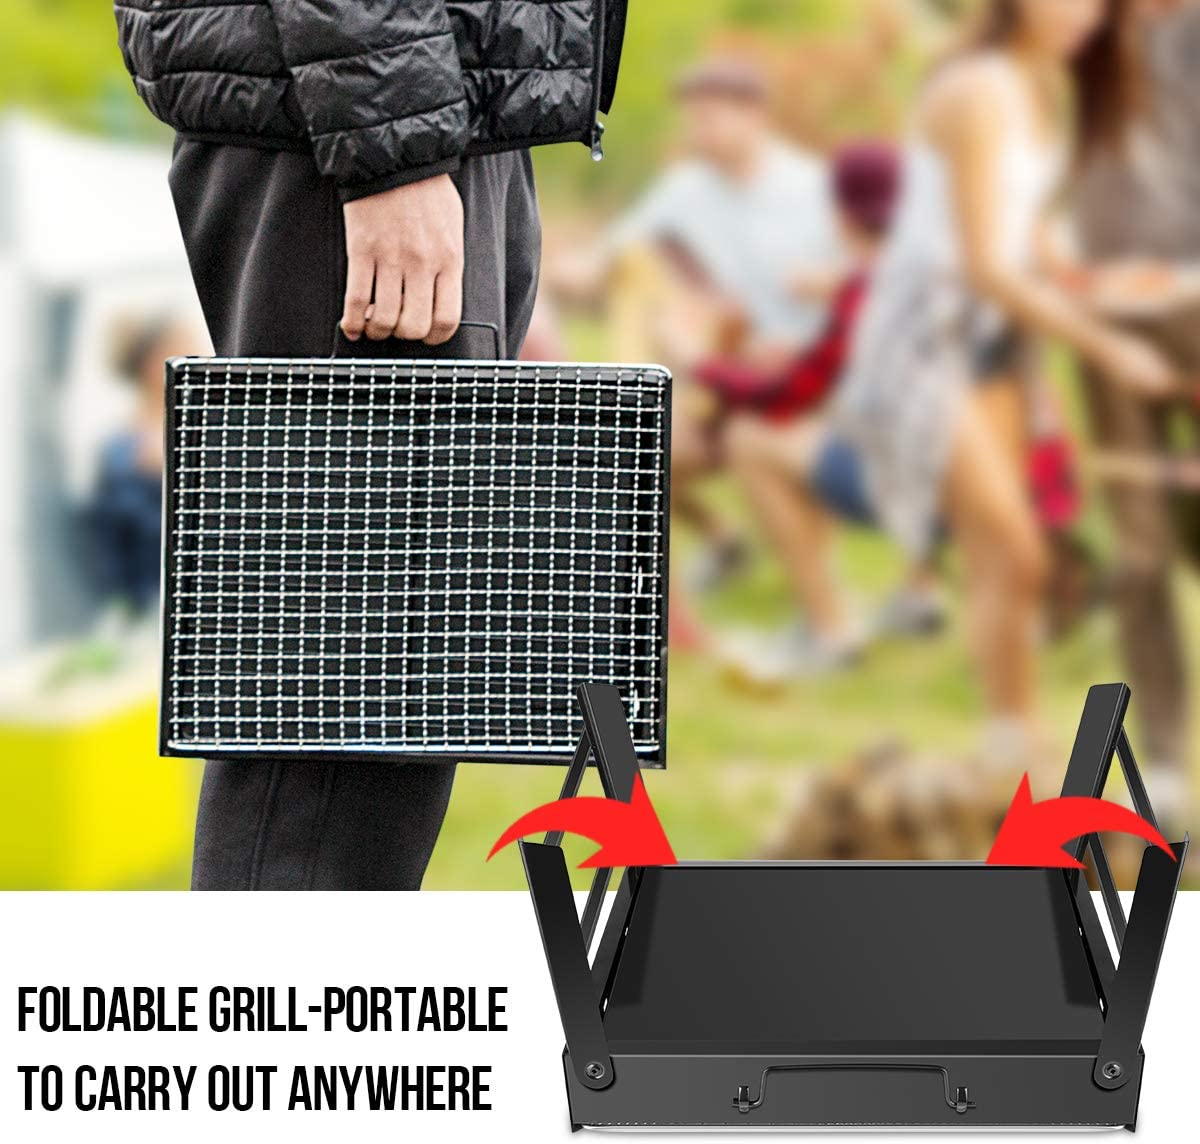 Portable Mini Foldable Charcoal Barbecue Black WOSTOO Charcoal Barbecue BBQ Charcoal Barbecue Picnic Barbecue Garden Camping Party Beach Outdoor Barbecue